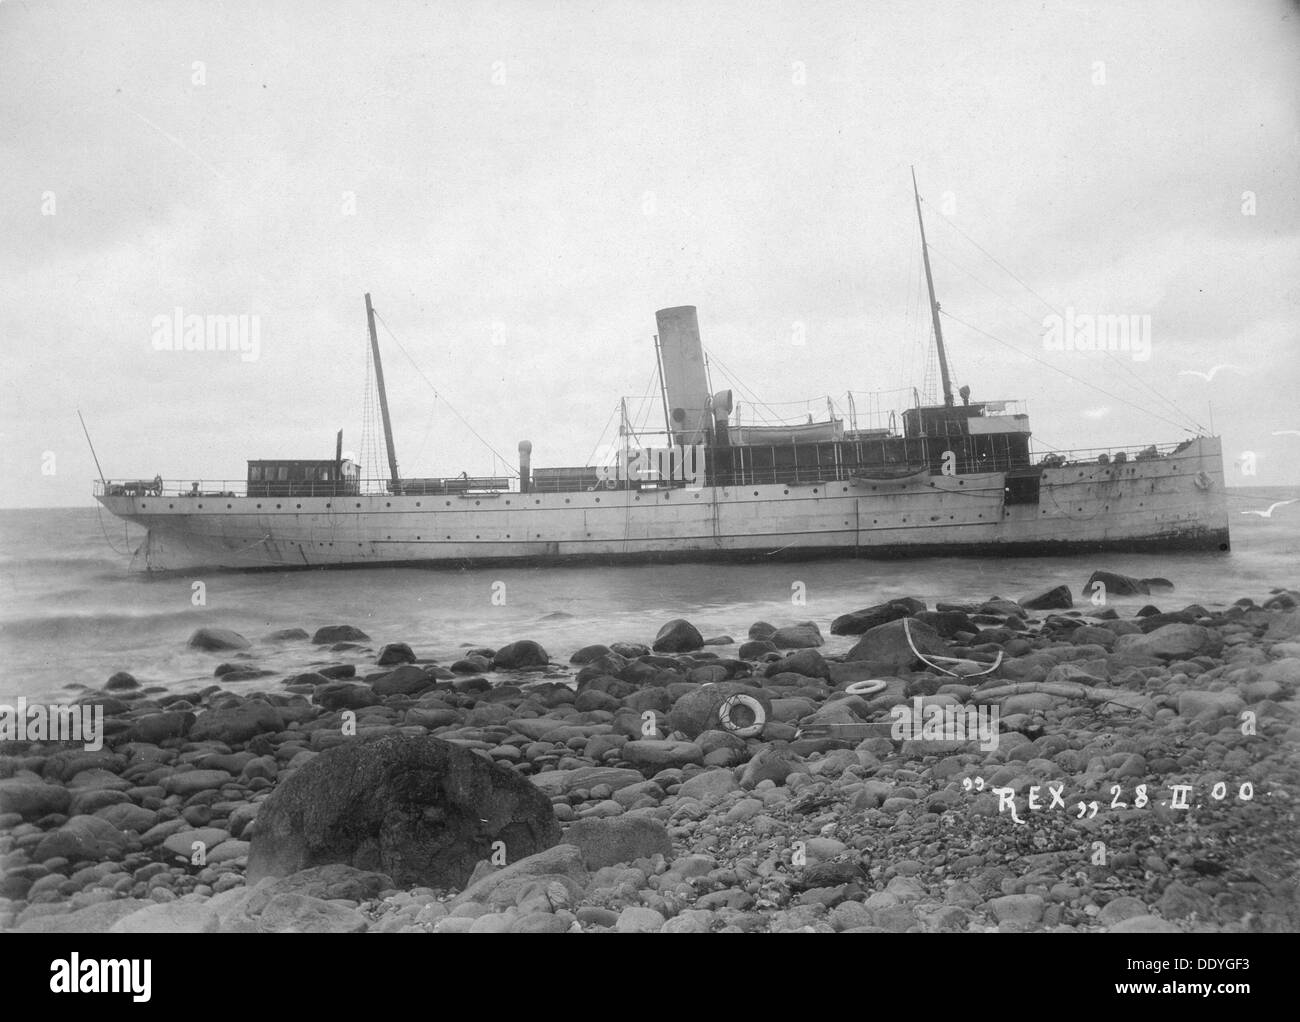 The mail Steamer 'Rex', wrecked near Lohme, on the north coast of Rügen, Germany, 28th February 1900. The Swedish vessel ran aground in fog on 27th February. Five women were drowned trying to escape from the stricken vessel. The wreck later broke in two. - Stock Image